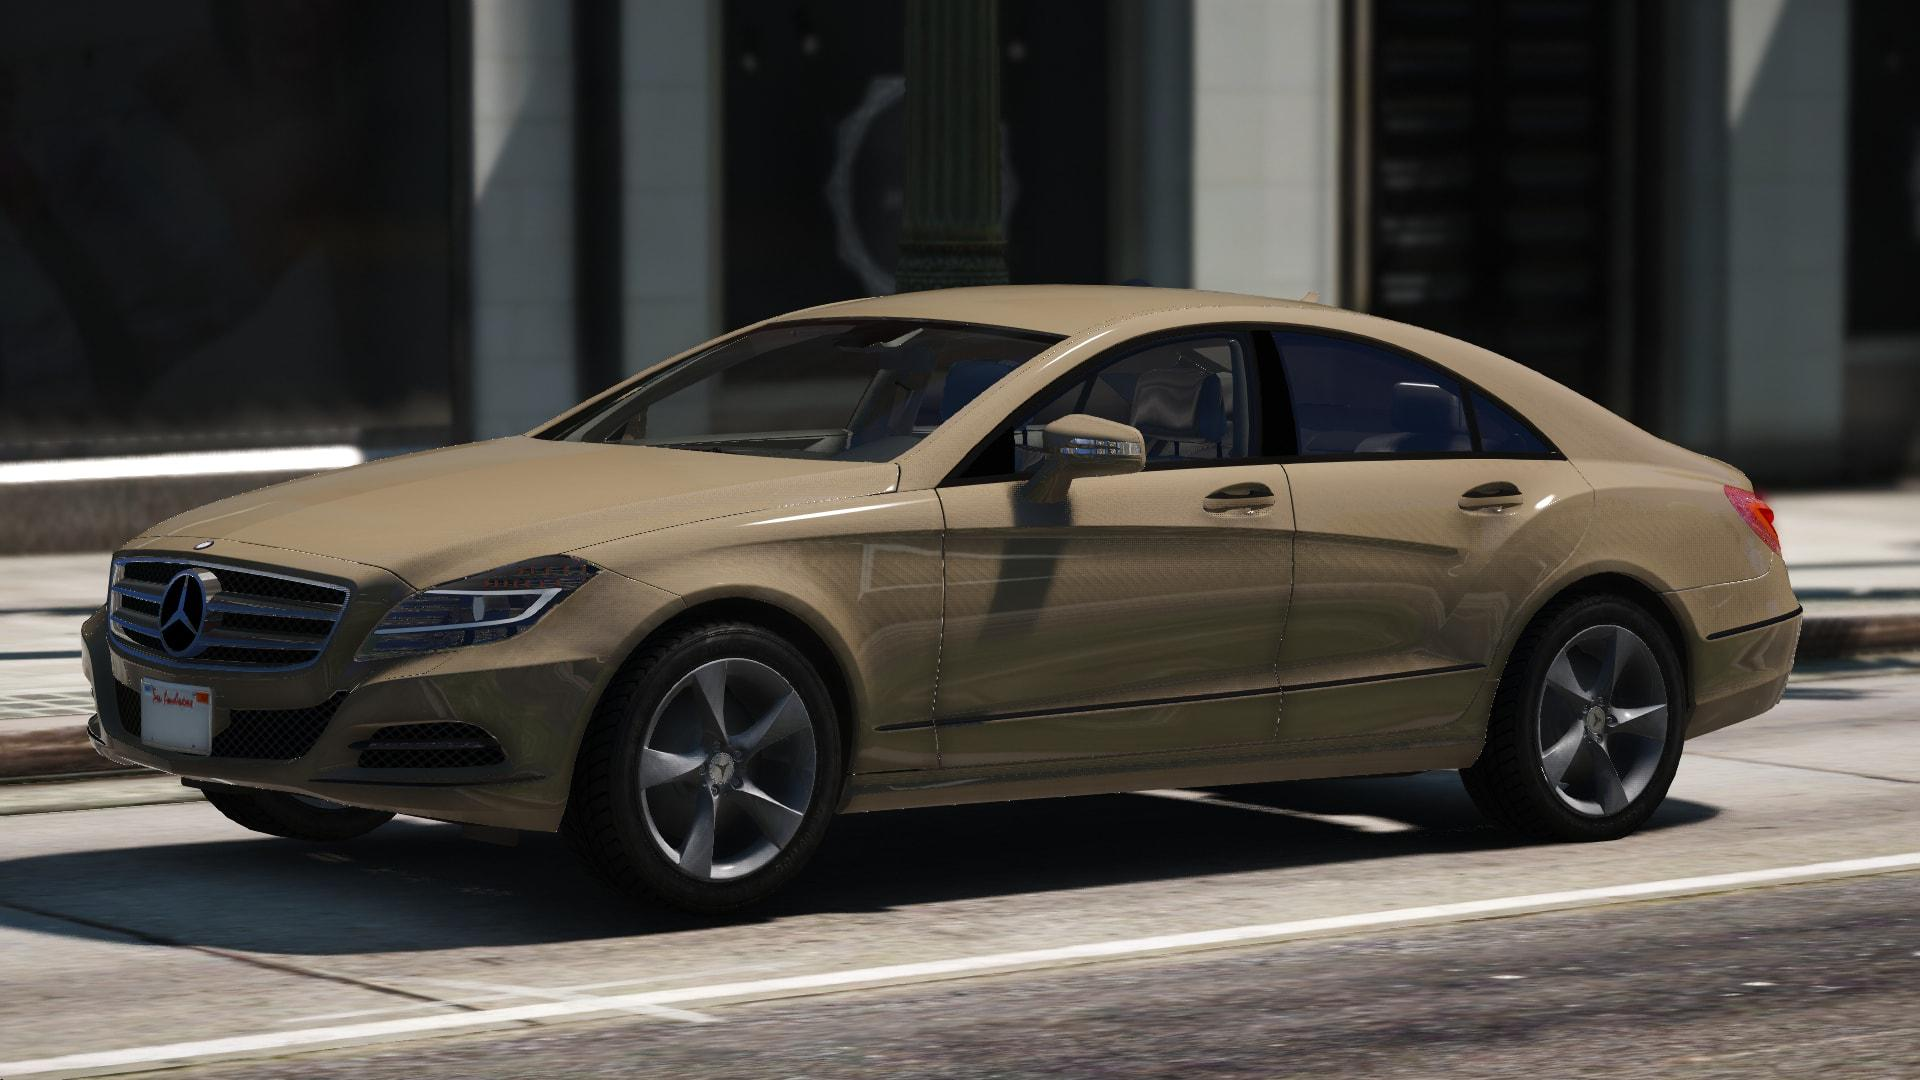 Mercedes benz cls 2012 unlocked gta5 for Mercedes benz cls 2012 price